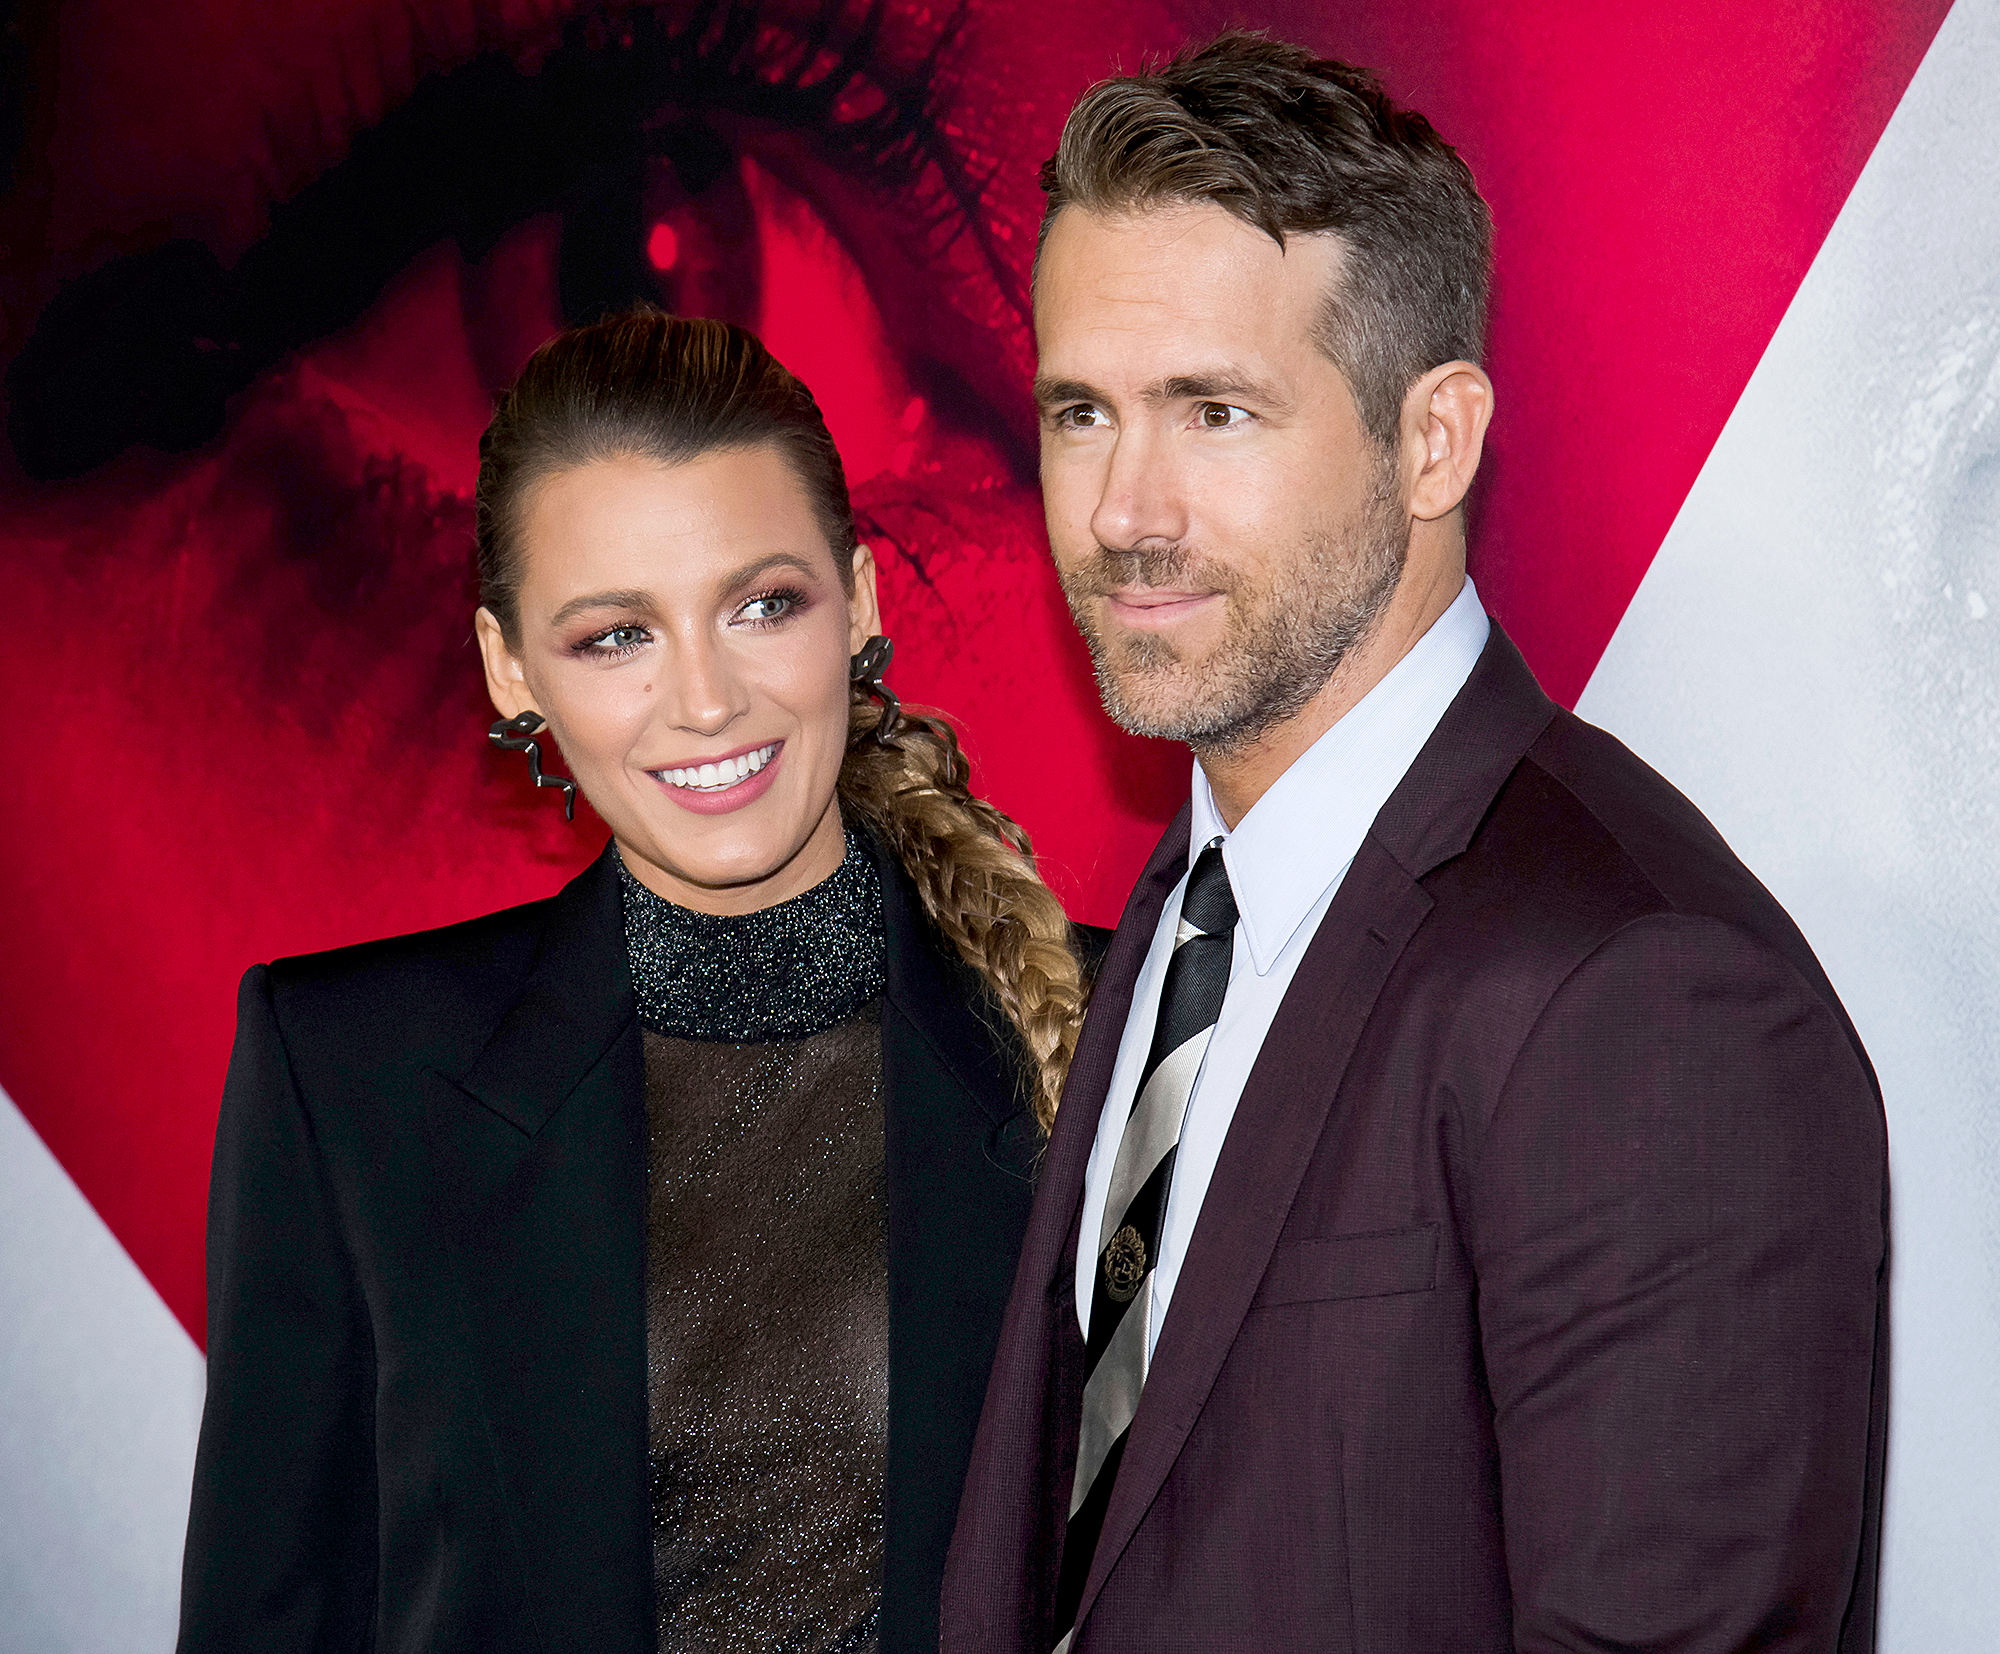 Ryan-Reynolds-Left-Film-Set-to-Be-With-Blake-Lively-After-3rd-Baby's-Arrival-1